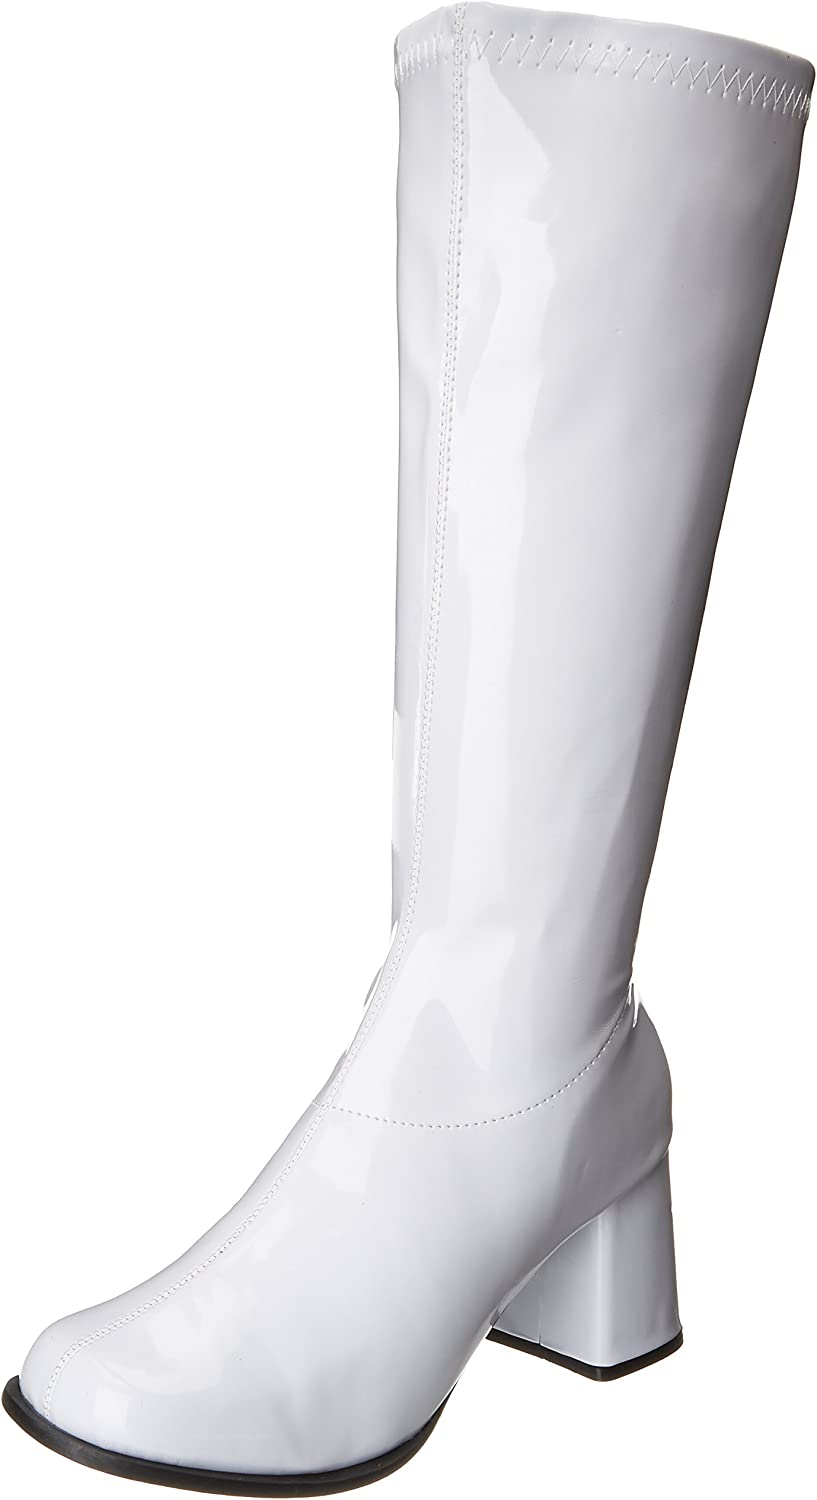 Ellie Shoes Women's Go-Go Boot